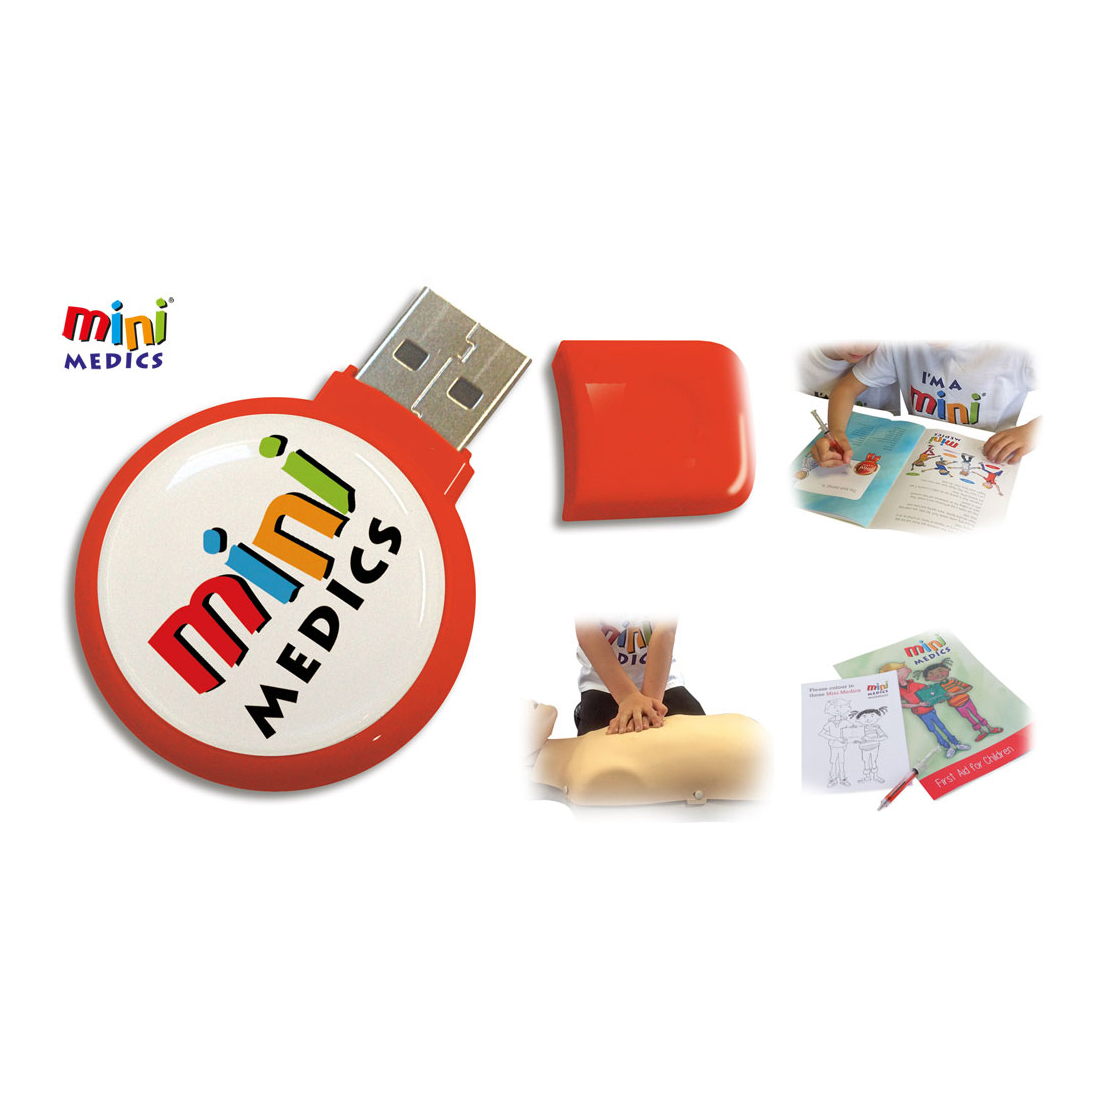 Mini Medics USBB Training Pack with 32 Books & Syringe Pens Ref CM1181 Up to 7-10 Day Leadtime AED2019